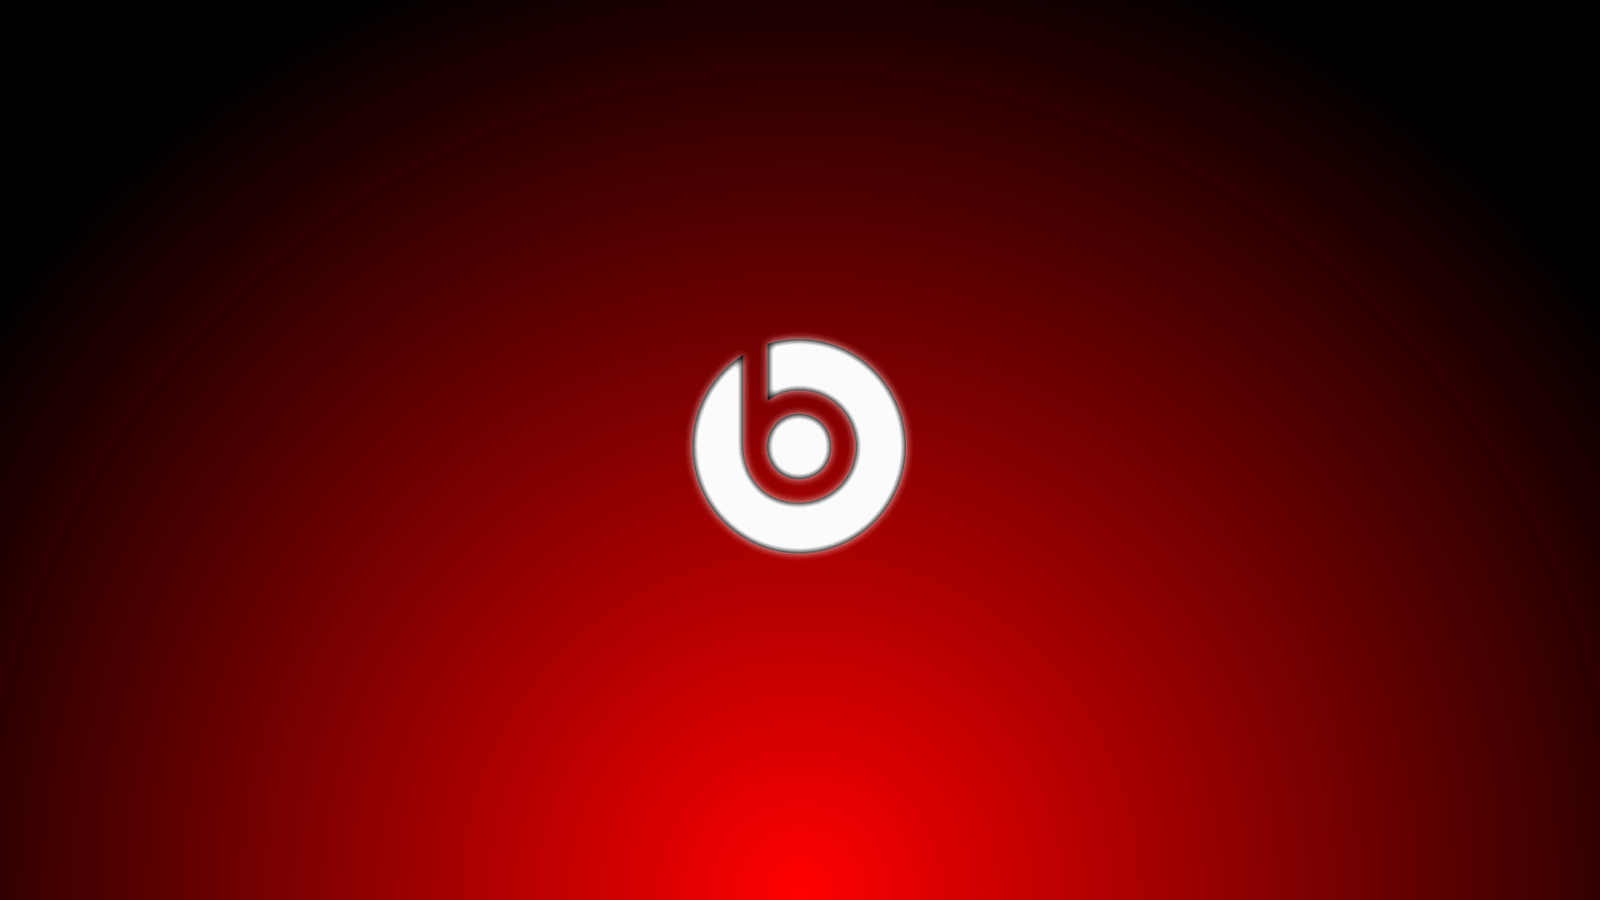 Beats By Dr Dre red